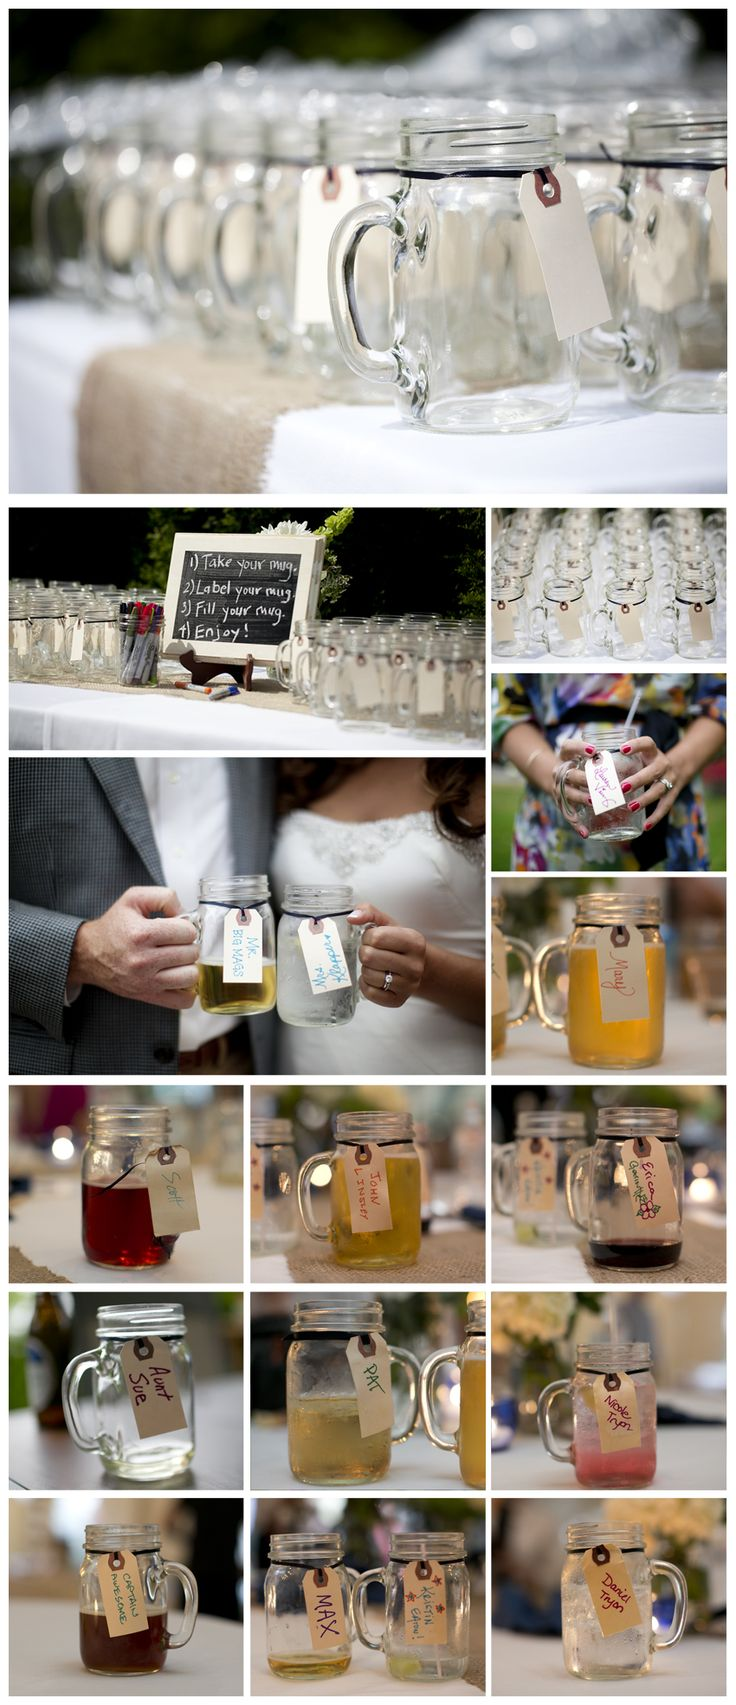 http://www.christinashawphotography.com/meet-mr-mrs-klapper/ backyard wedding mason jars for drinking